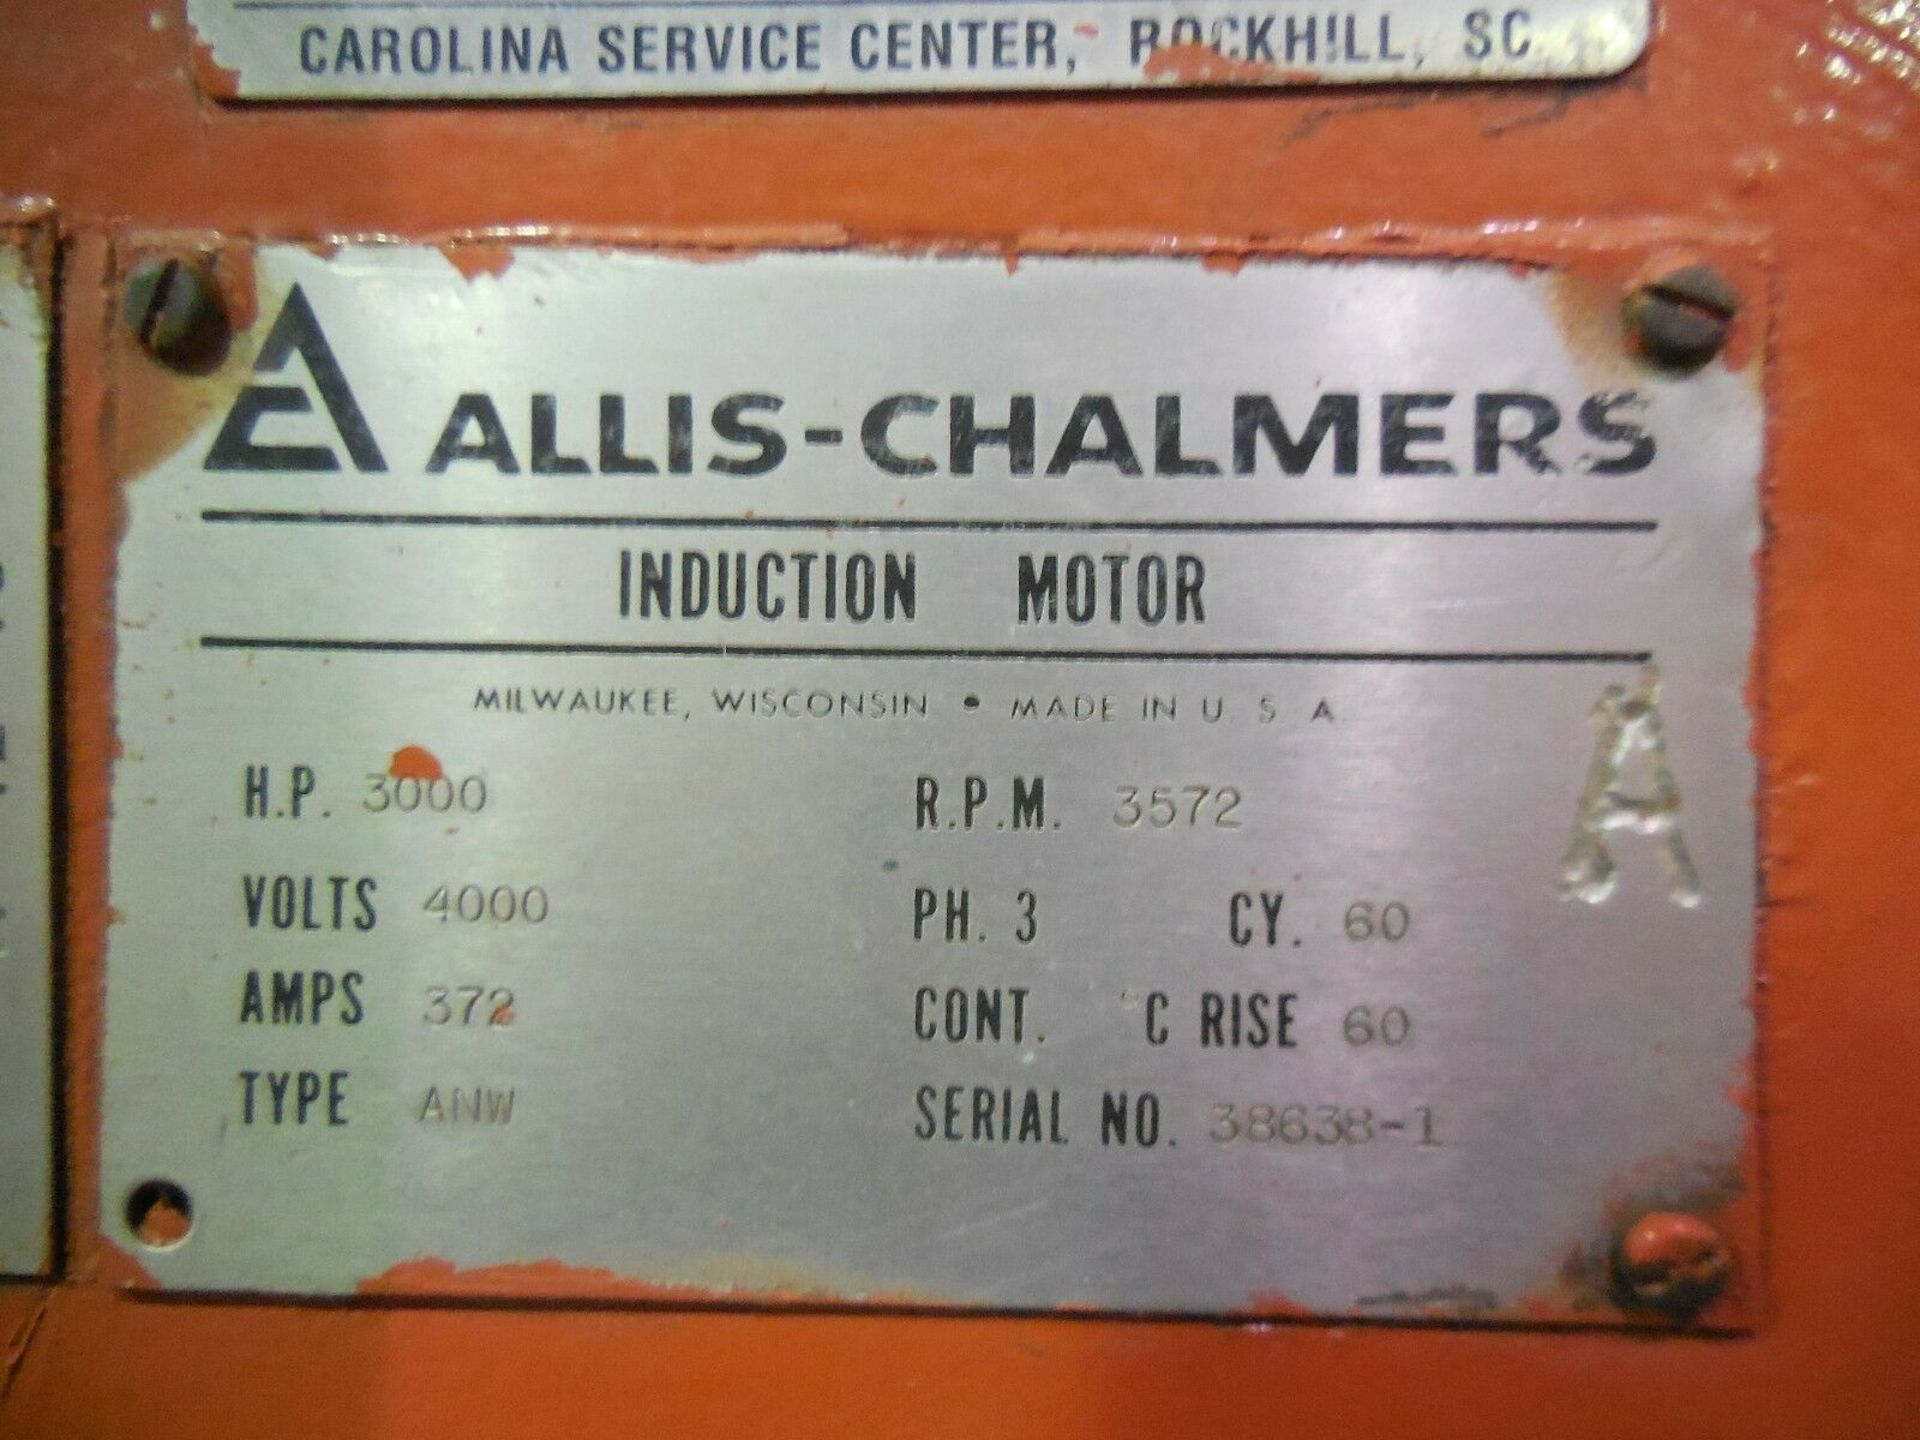 Allis Chalmers 3000 HP Induction Motor. 3572 RPM. 4000 V. Type ANW. 3 Ph. 60 Hz. - Image 6 of 6